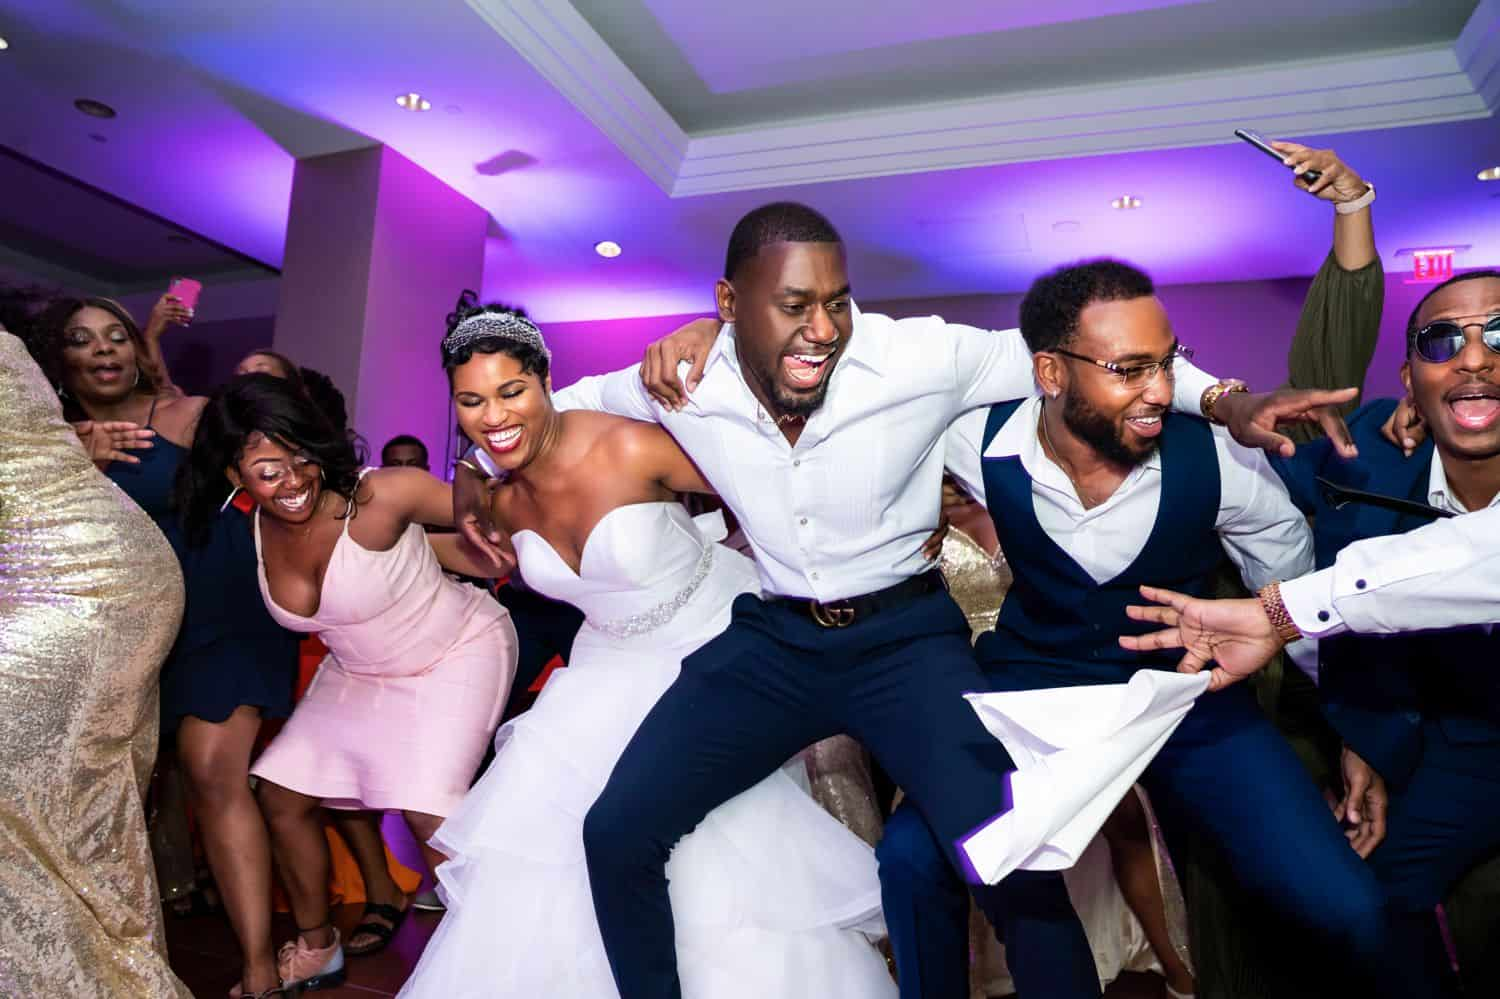 A bride and groom dance happily in a circle with their friends.